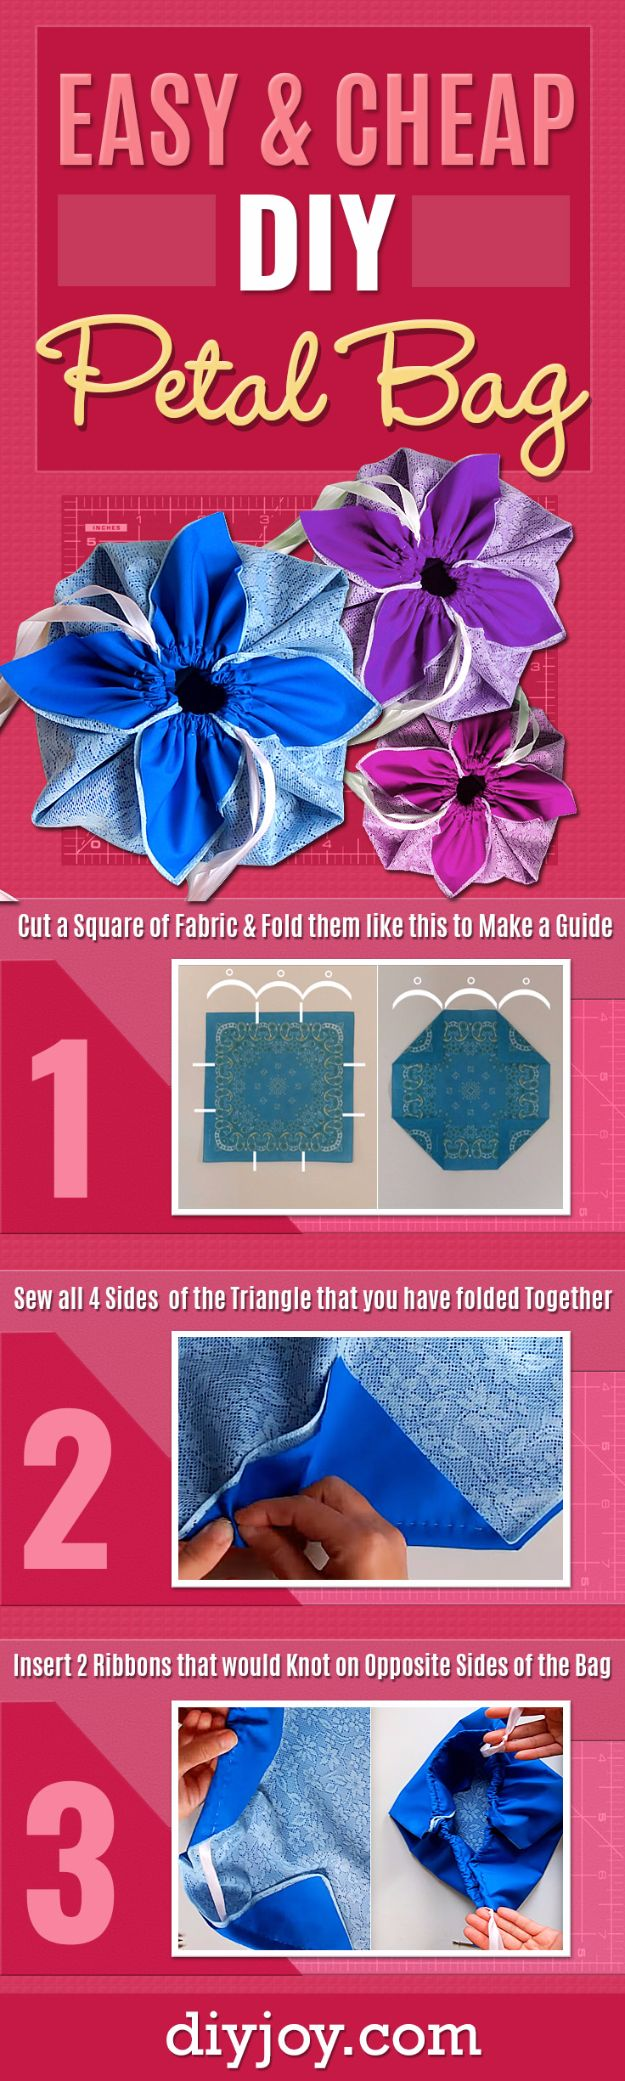 Cheap DIY Gifts and Inexpensive Homemade Christmas Gift Ideas for People on A Budget - DIY Petal Bag - To Make These Cool Presents Instead of Buying for the Holidays - Easy and Low Cost Gifts for Mom, Dad, Friends and Family - Quick Dollar Store Crafts and Projects for Xmas Gift Giving #gifts #diy